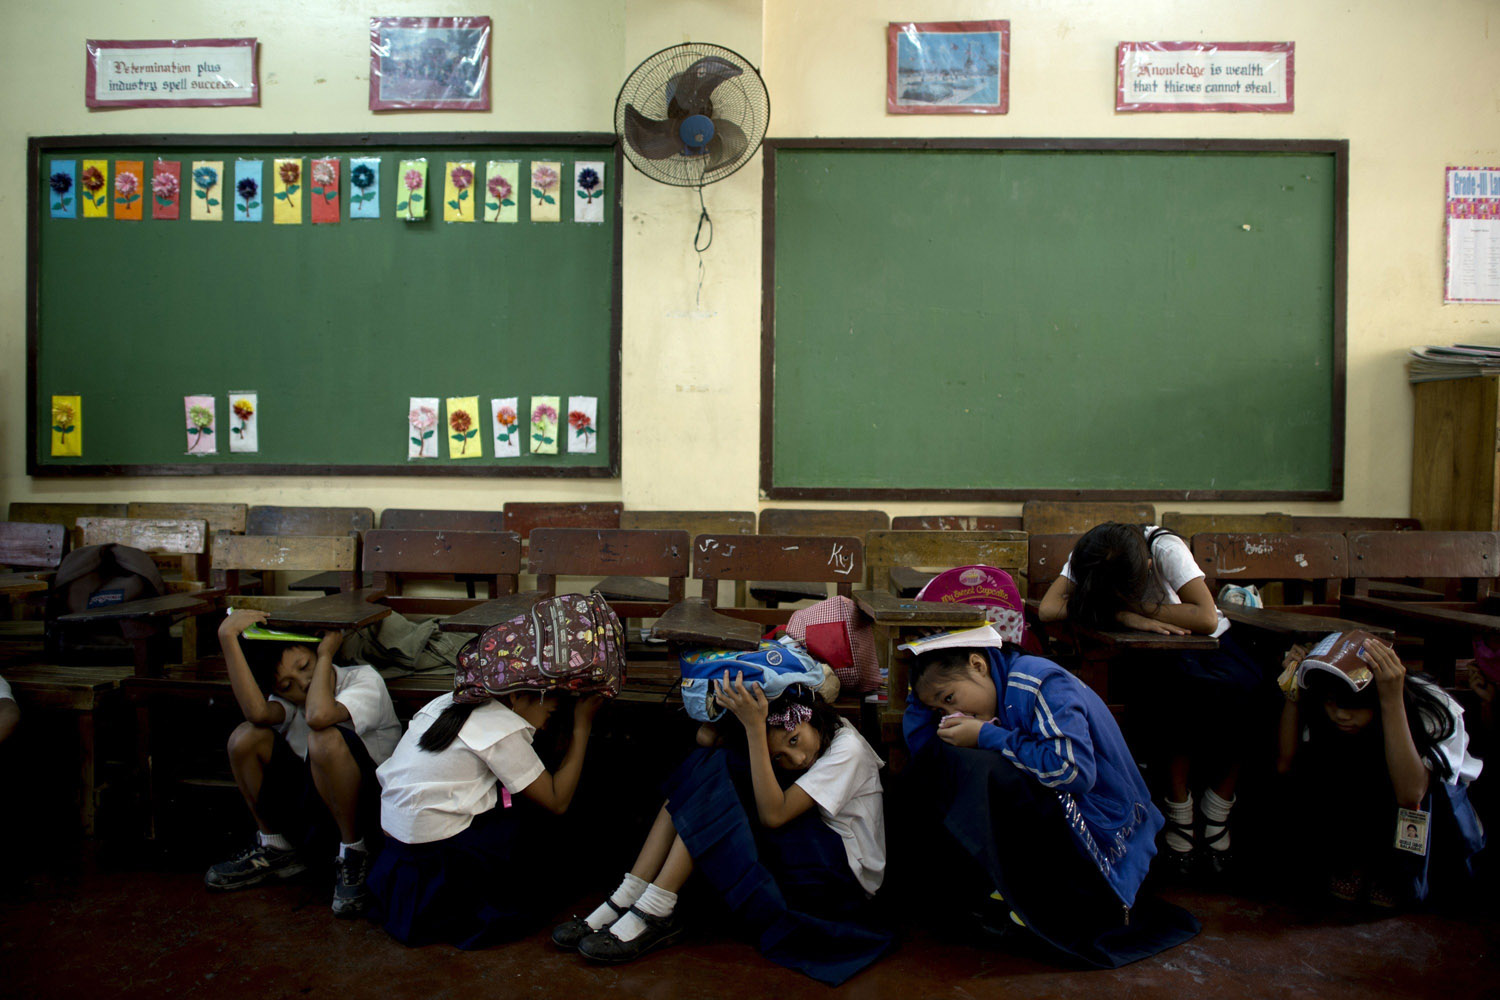 Mar. 19, 2014.                                Students of Bagong Silangan Elementary school cover their head during an earthquake drill in Manila. The students participated in a national emergency earthquake drill that aims to generate awareness on disaster risk reduction and assess their capacity level to respond during a disaster.